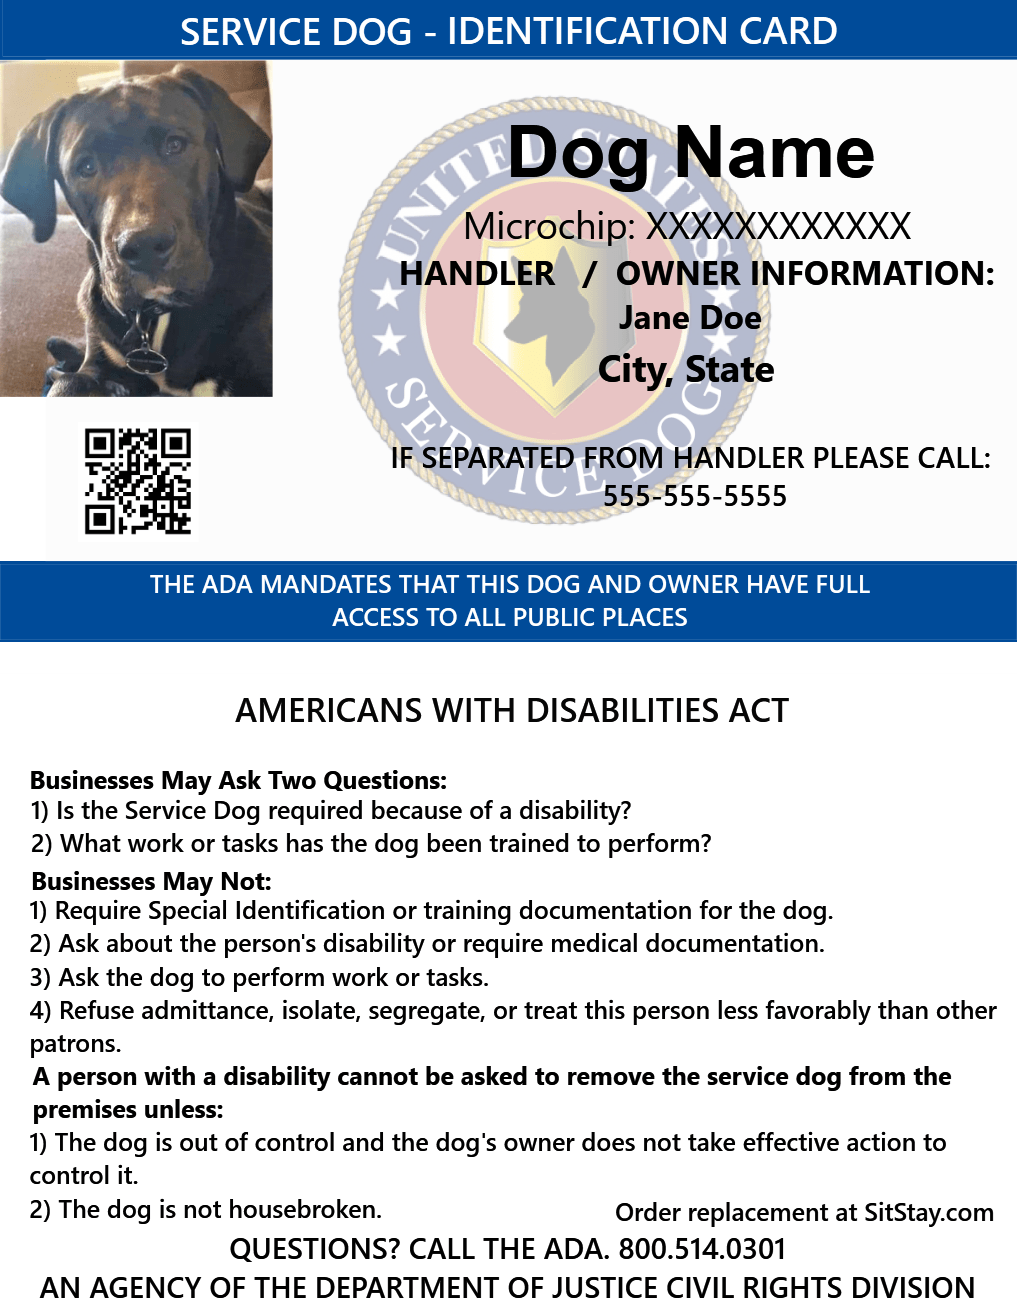 Id Card Service Dog With Holographic Security Seal Sitstay